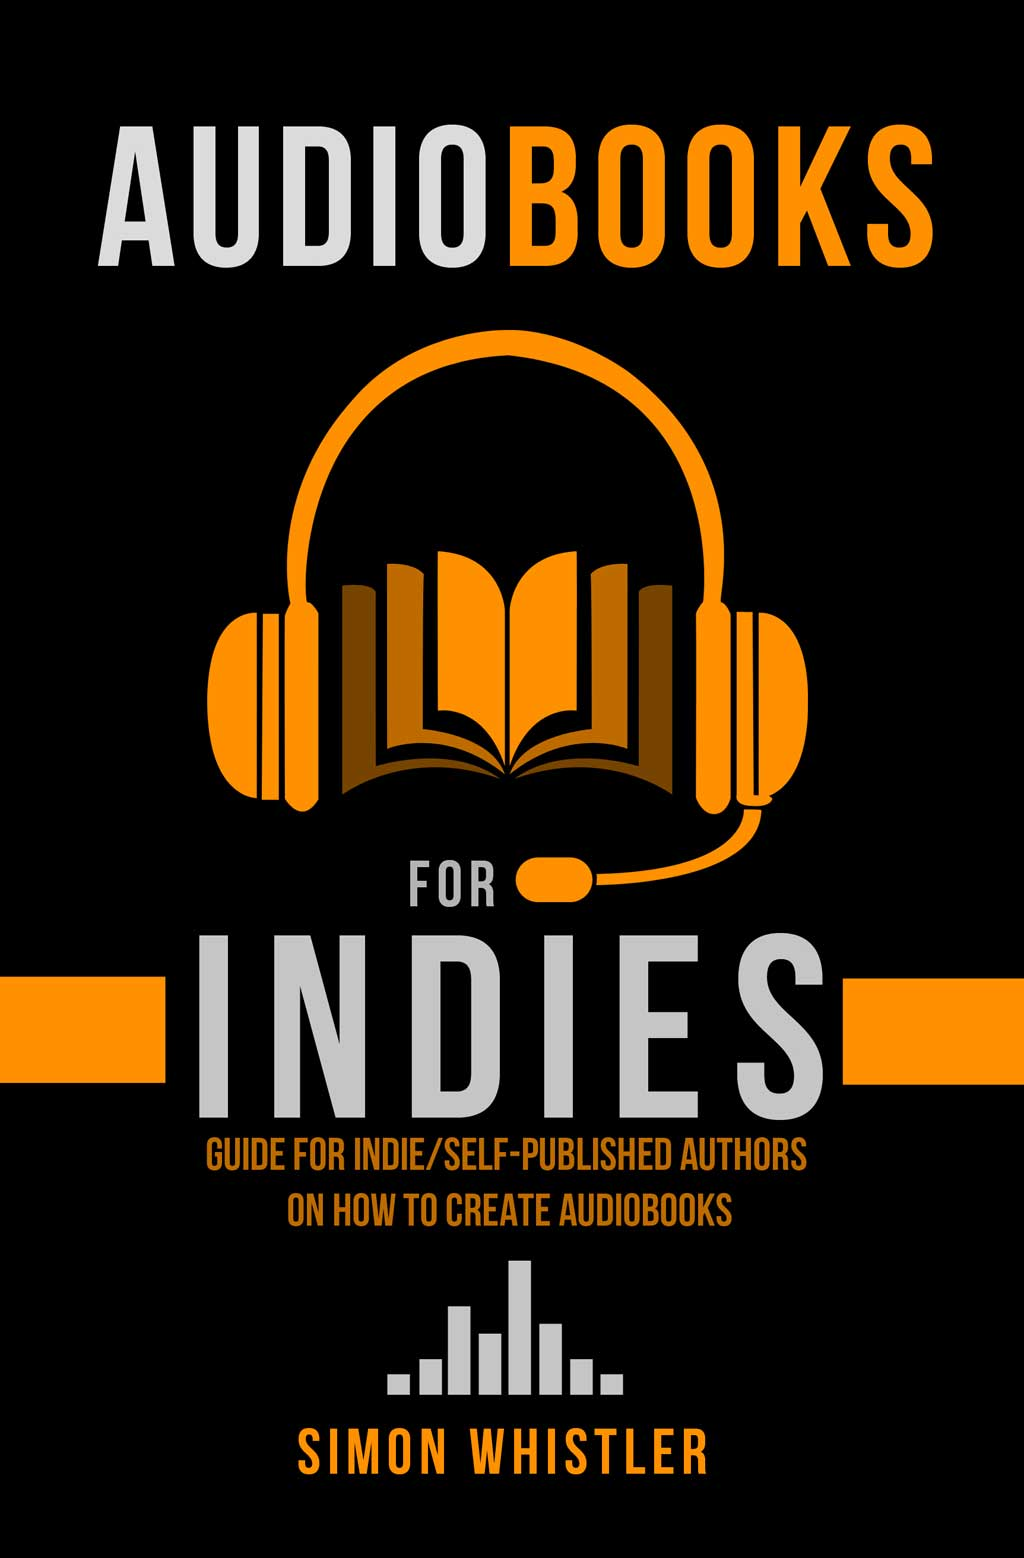 audiobooks-for-indies_final